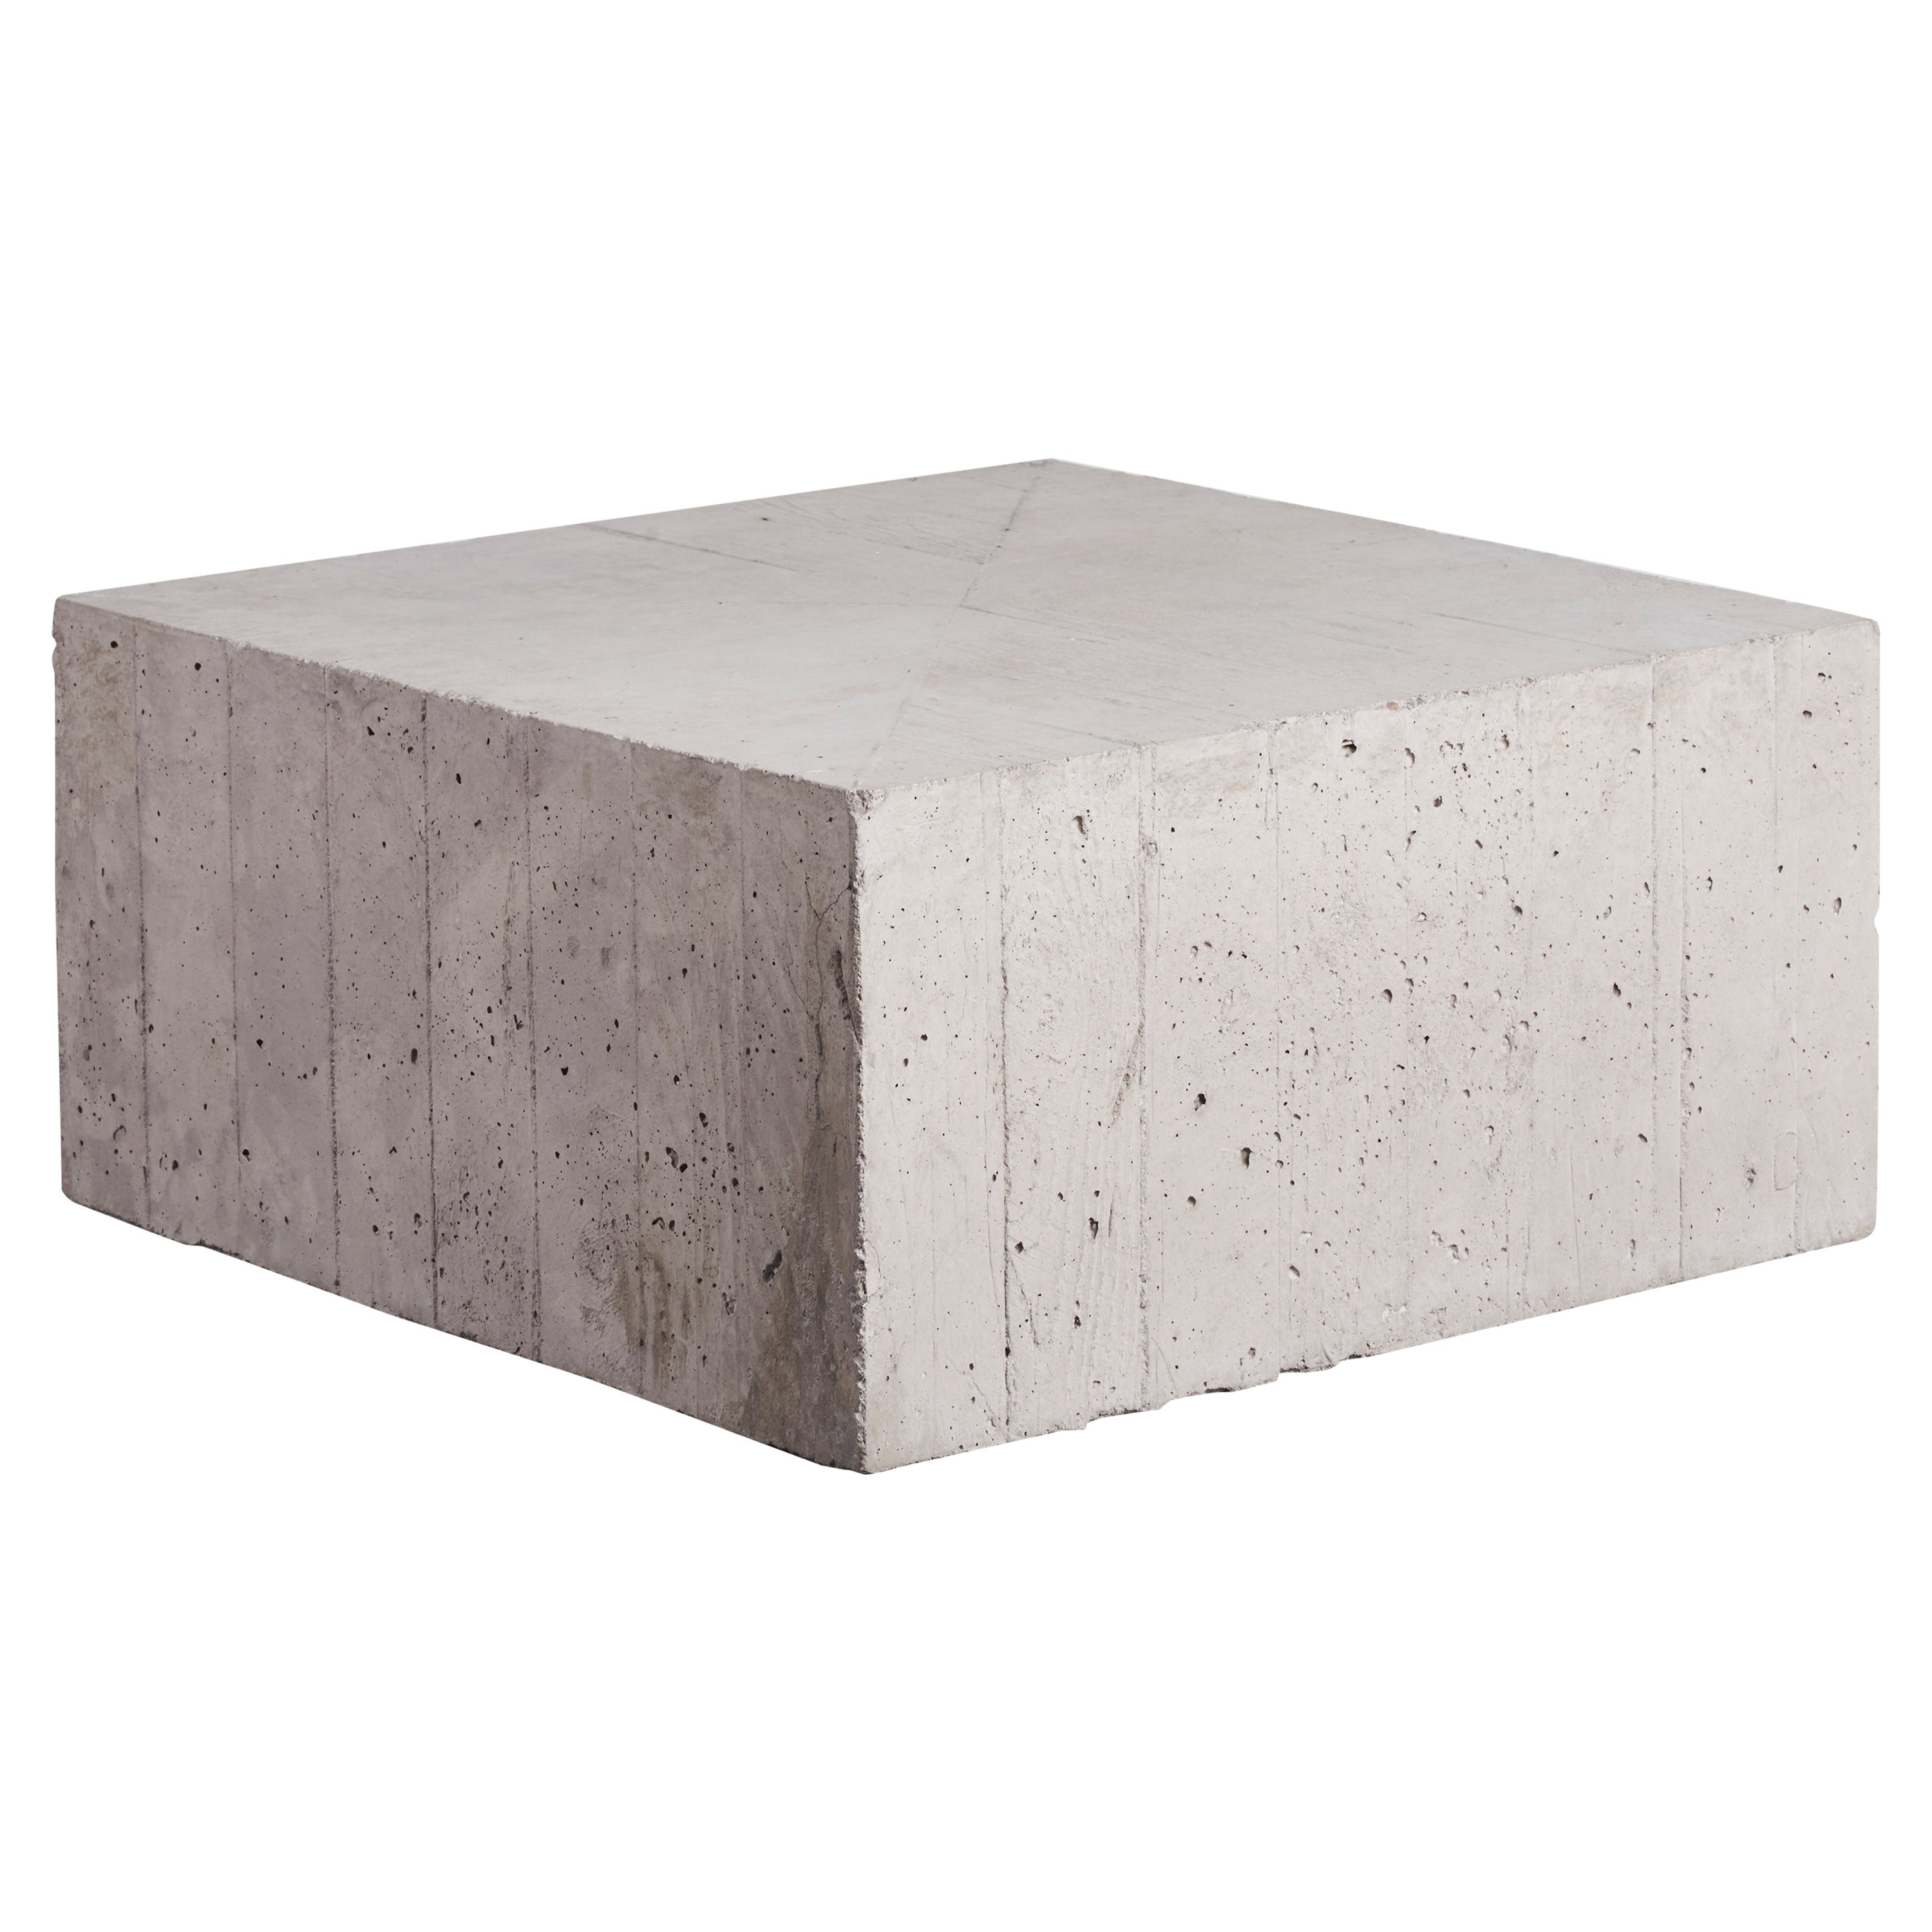 'Hashima' Reinforced Concrete Table, One of a Kind Artwork by Littlewhitehead